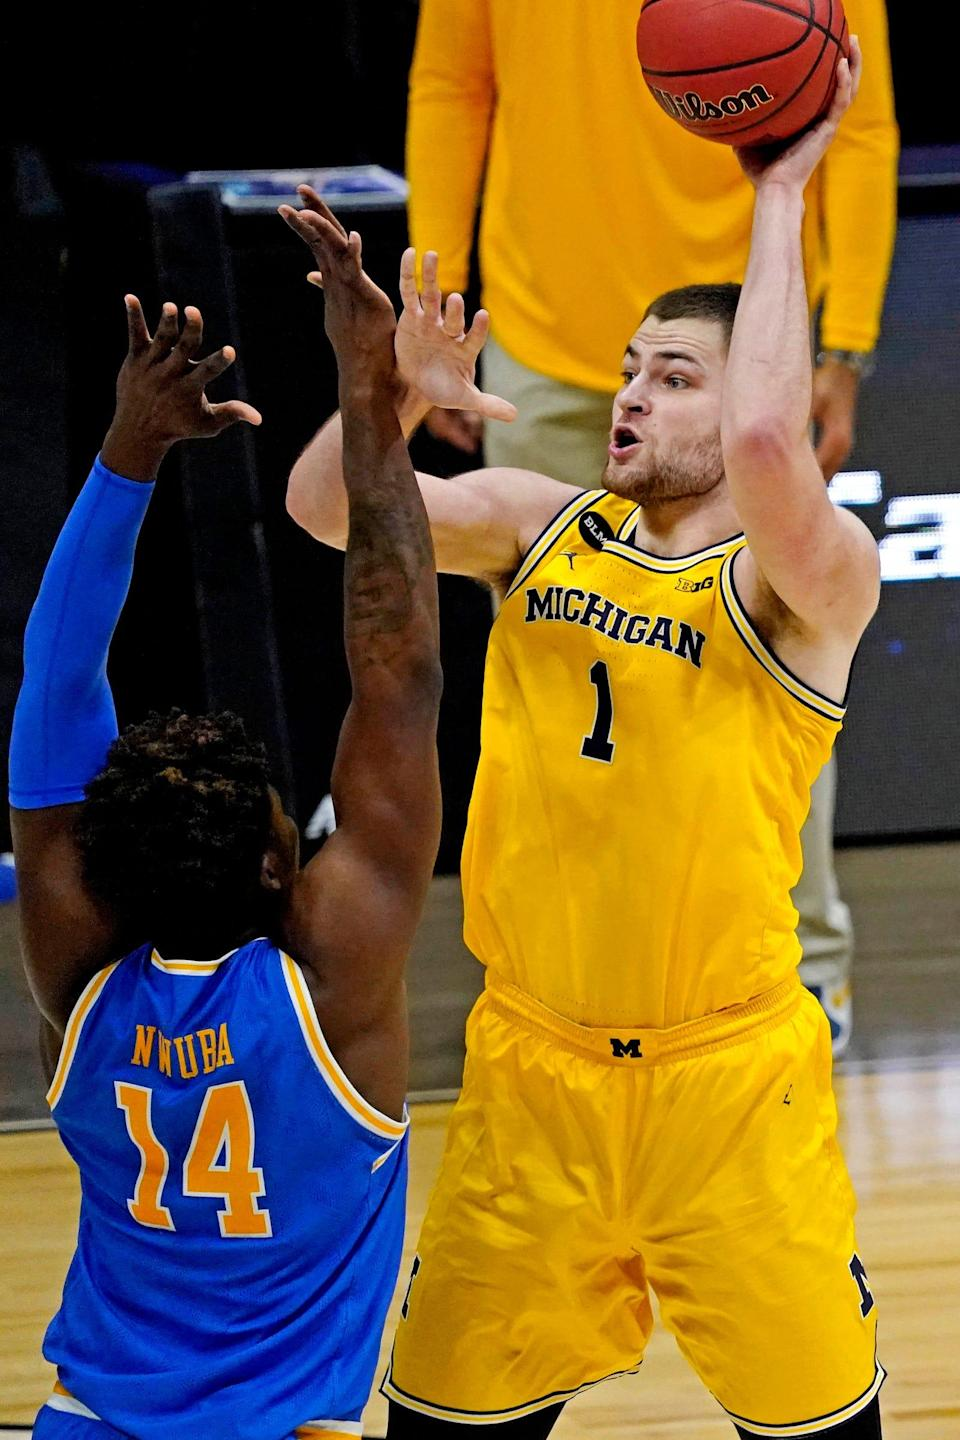 Michigan center Hunter Dickinson shoots the ball against UCLA forward Kenneth Nwuba during the second half of the Elite Eight game in the NCAA tournament on Tuesday, March 30, 2021, in Indianapolis.